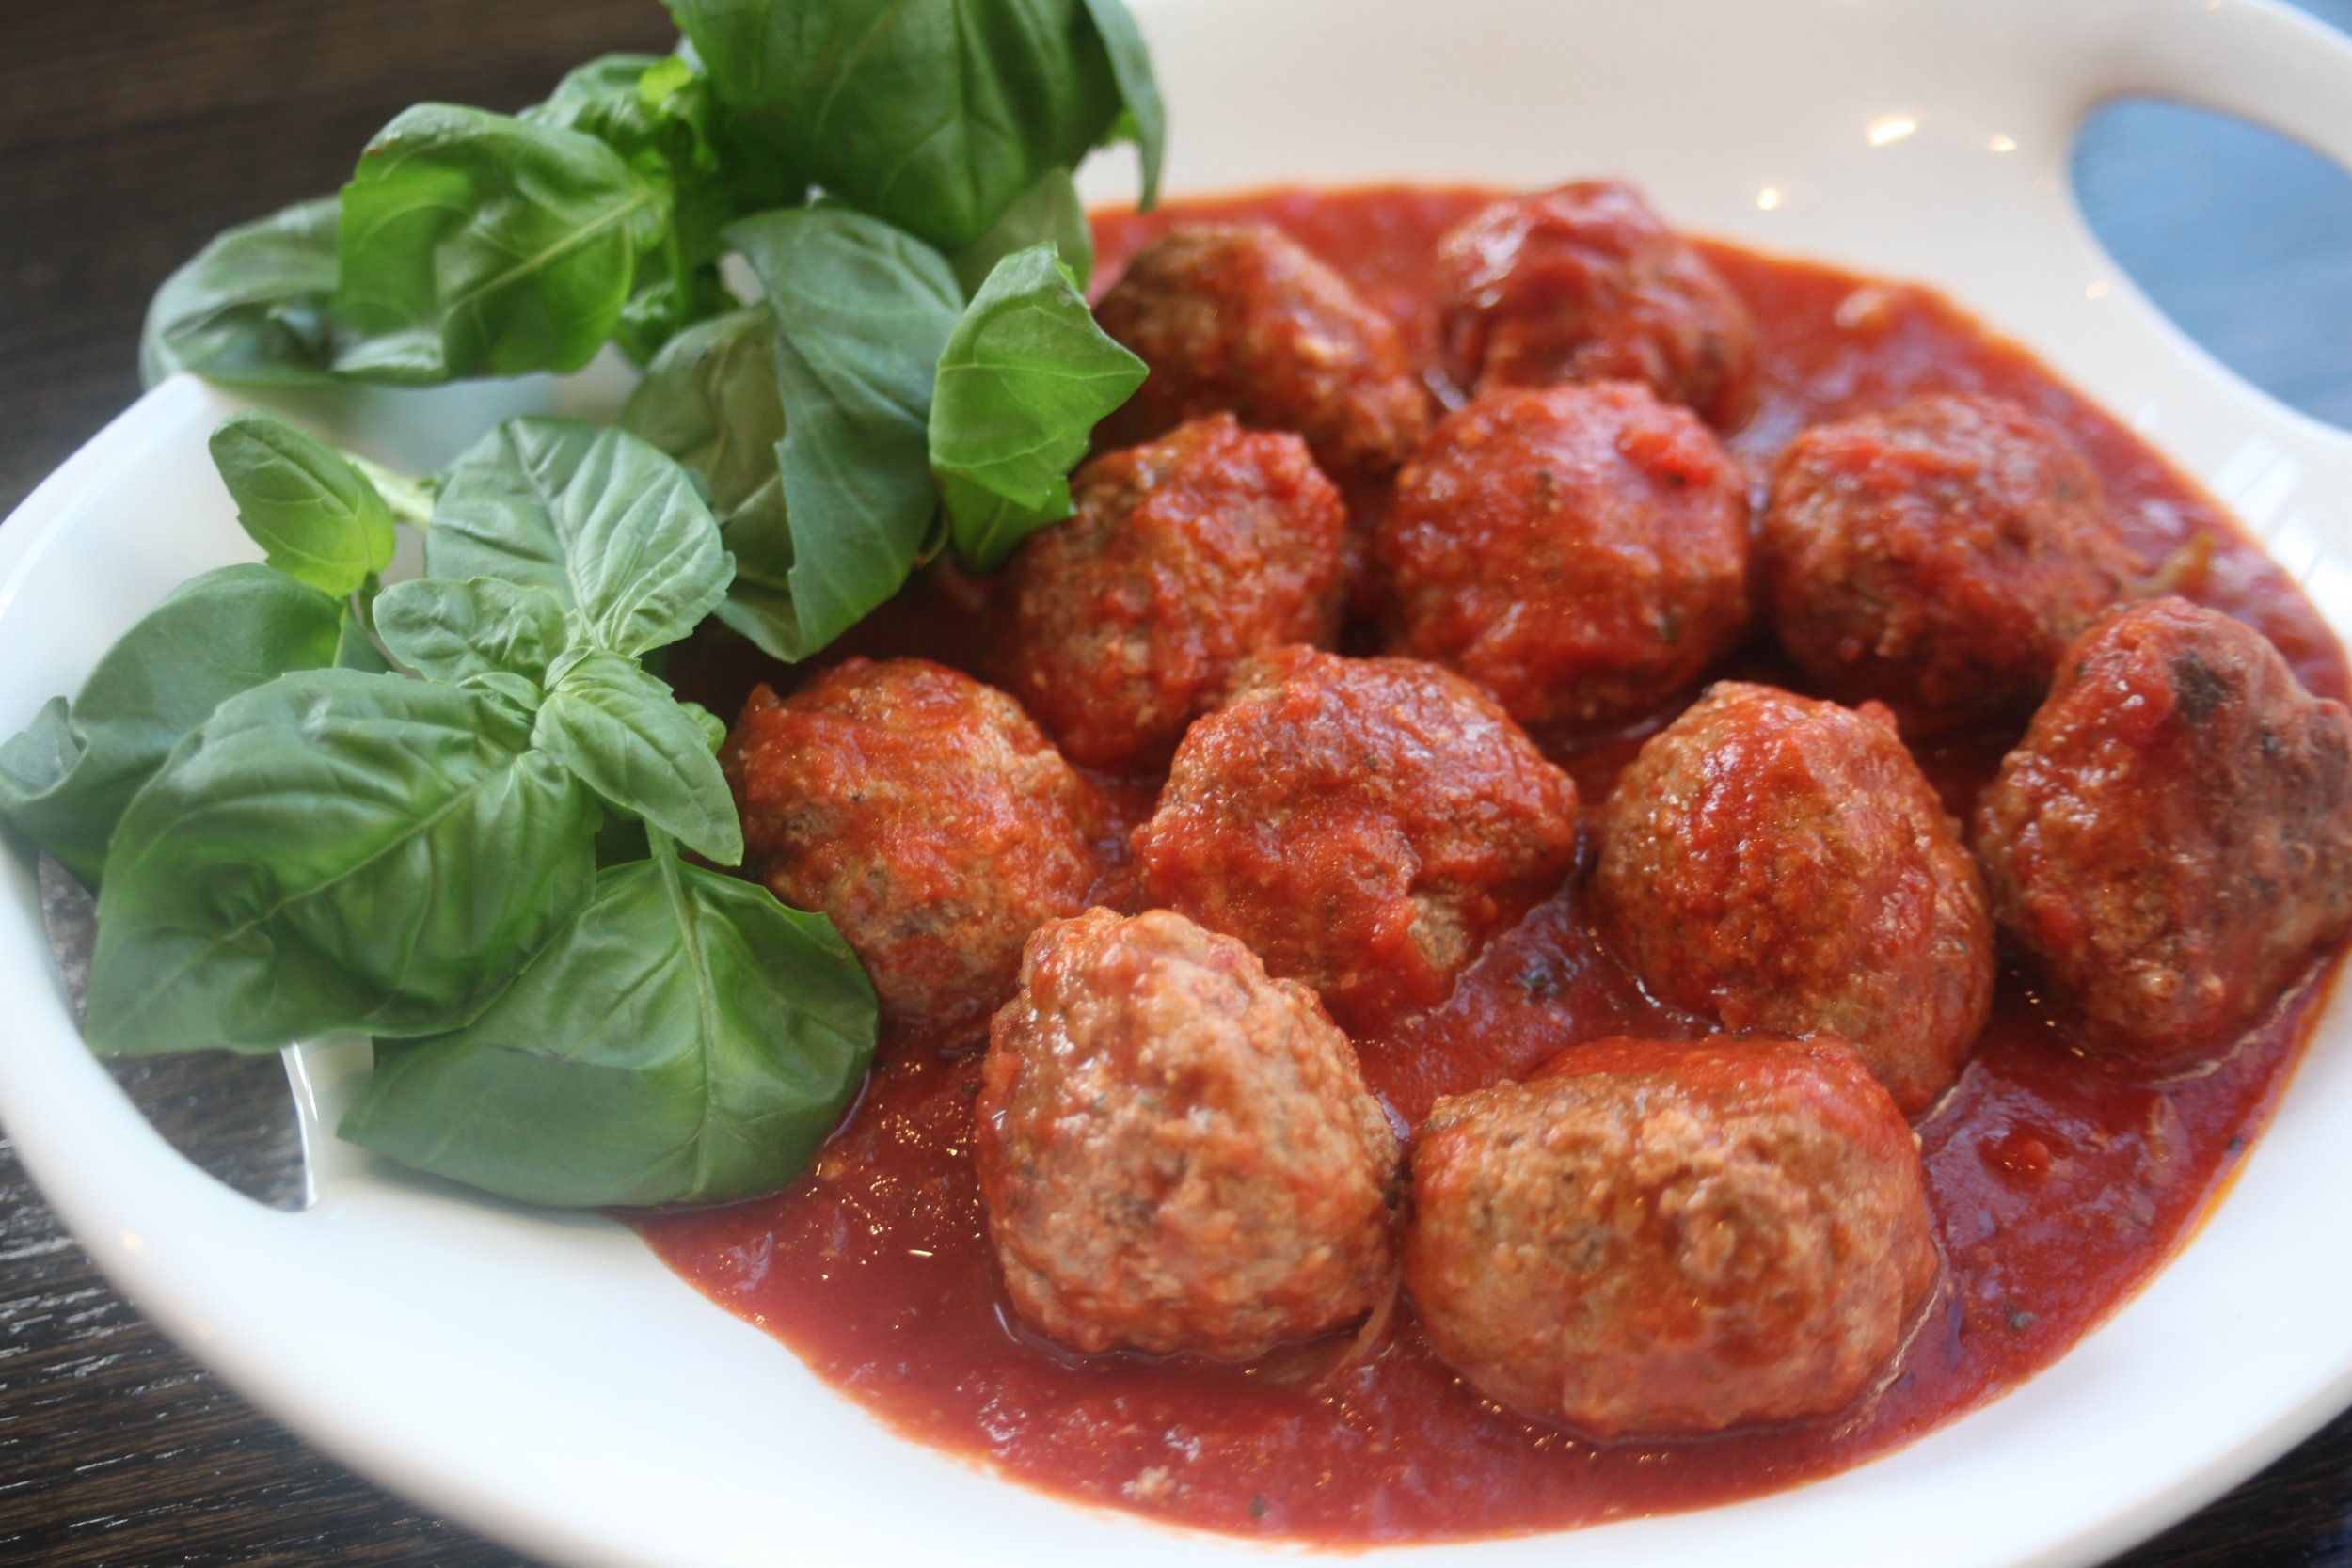 Saucy meatballs to put in casserole